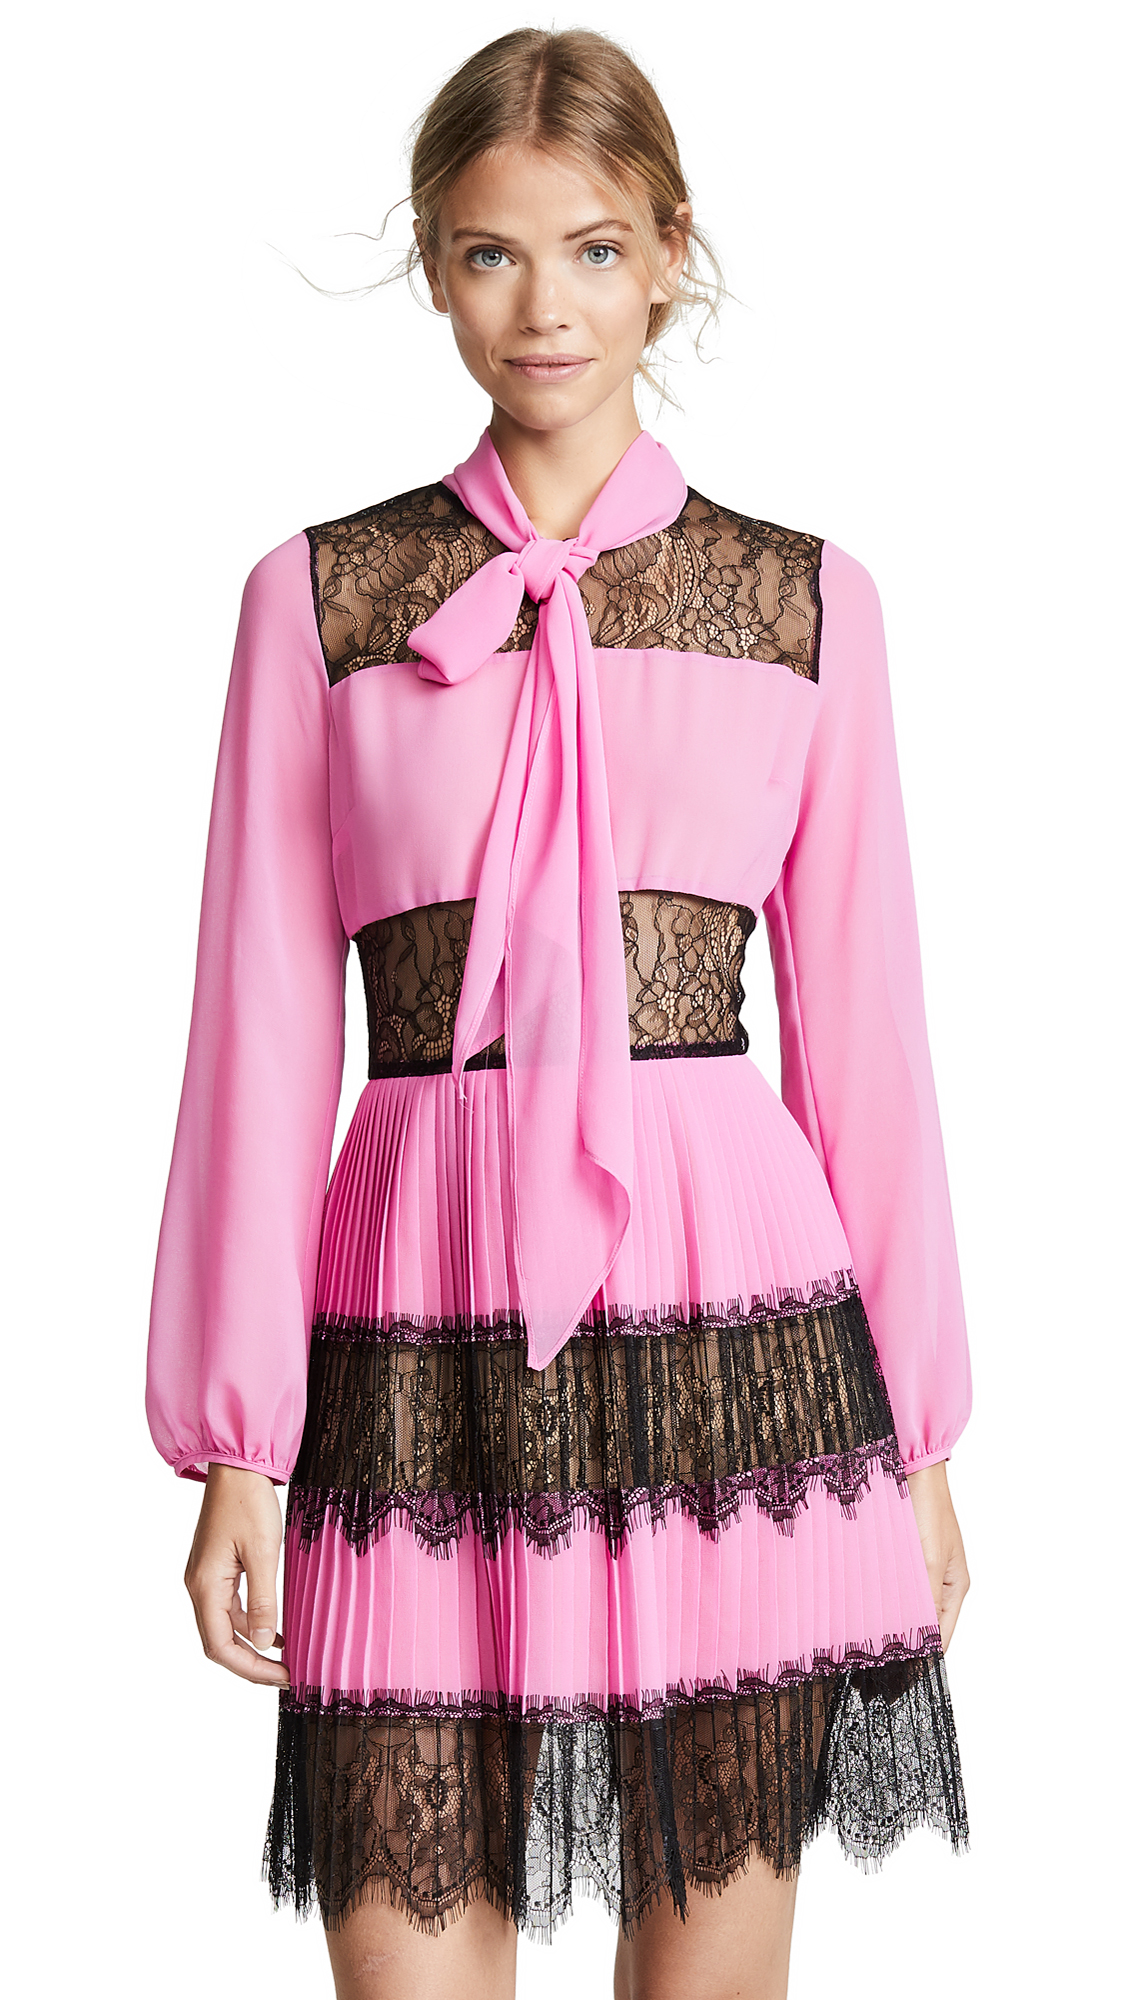 DELFI COLLECTIVE Dory Dress in Pink